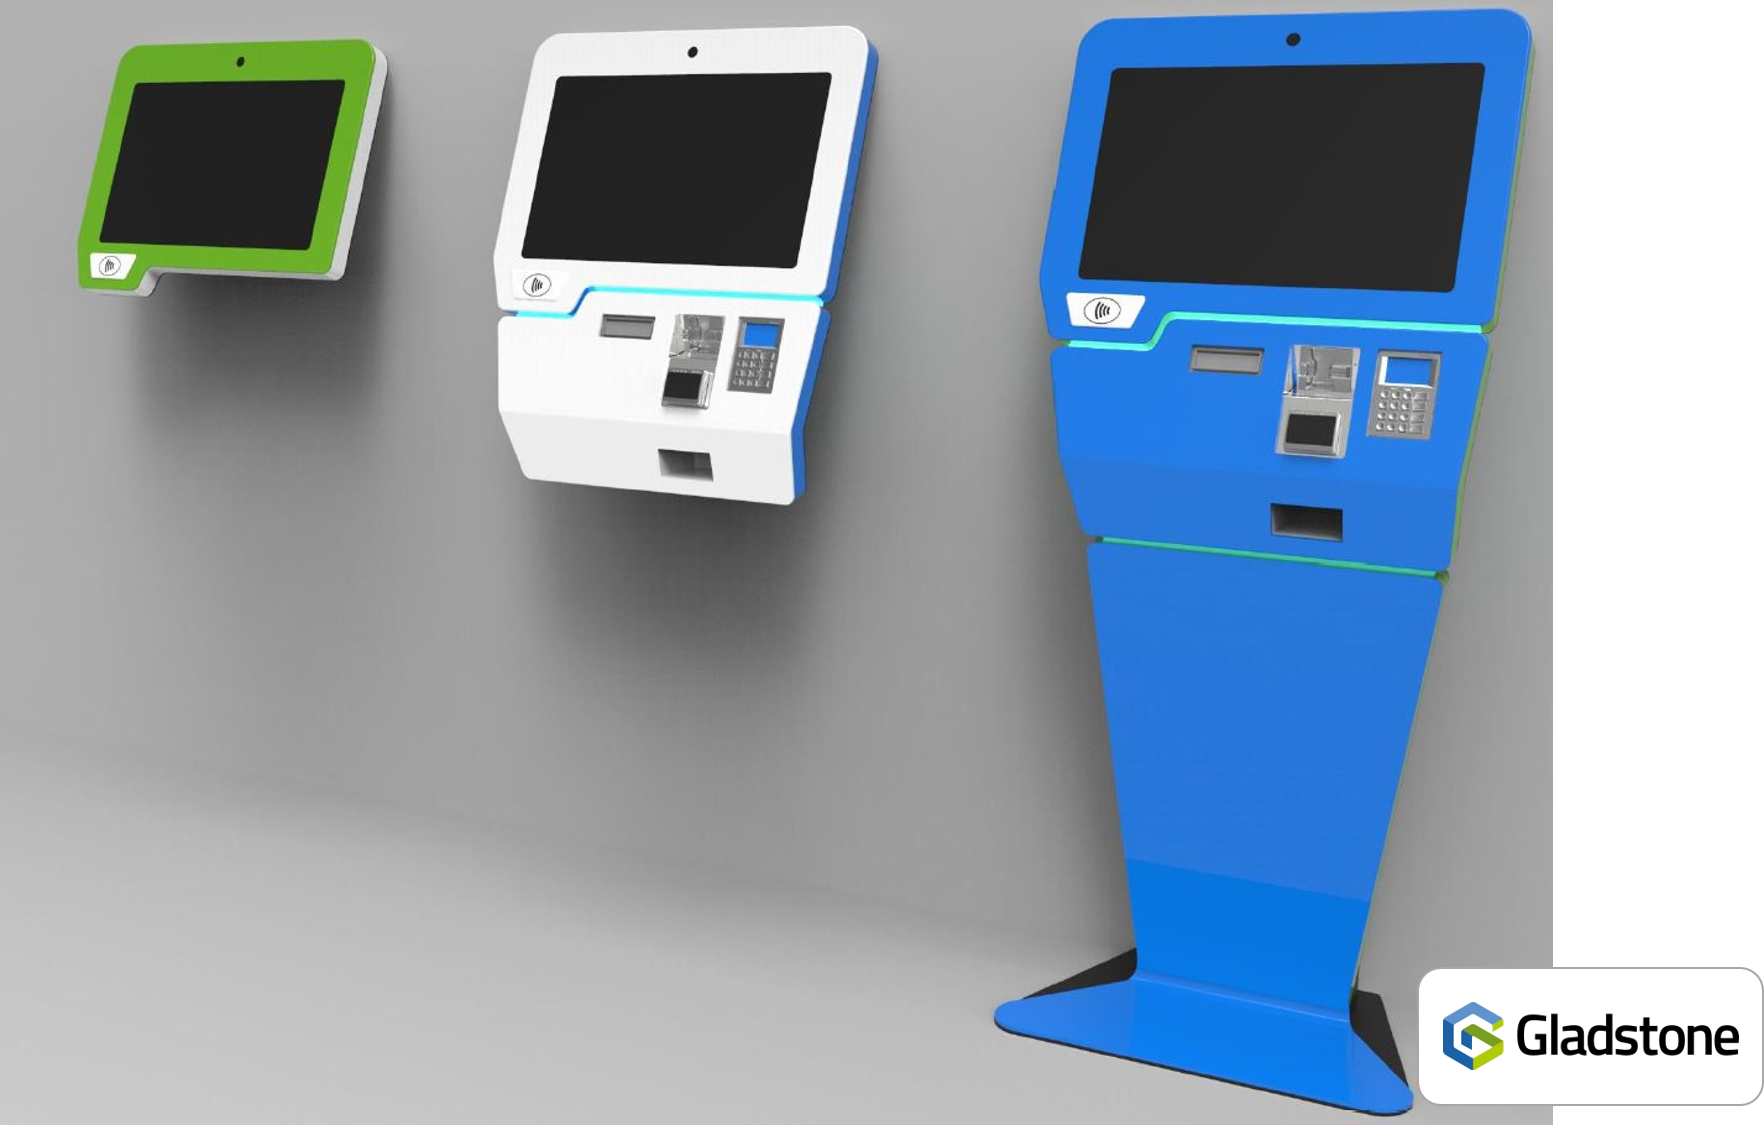 Kiosk v2 with G logo bottom right